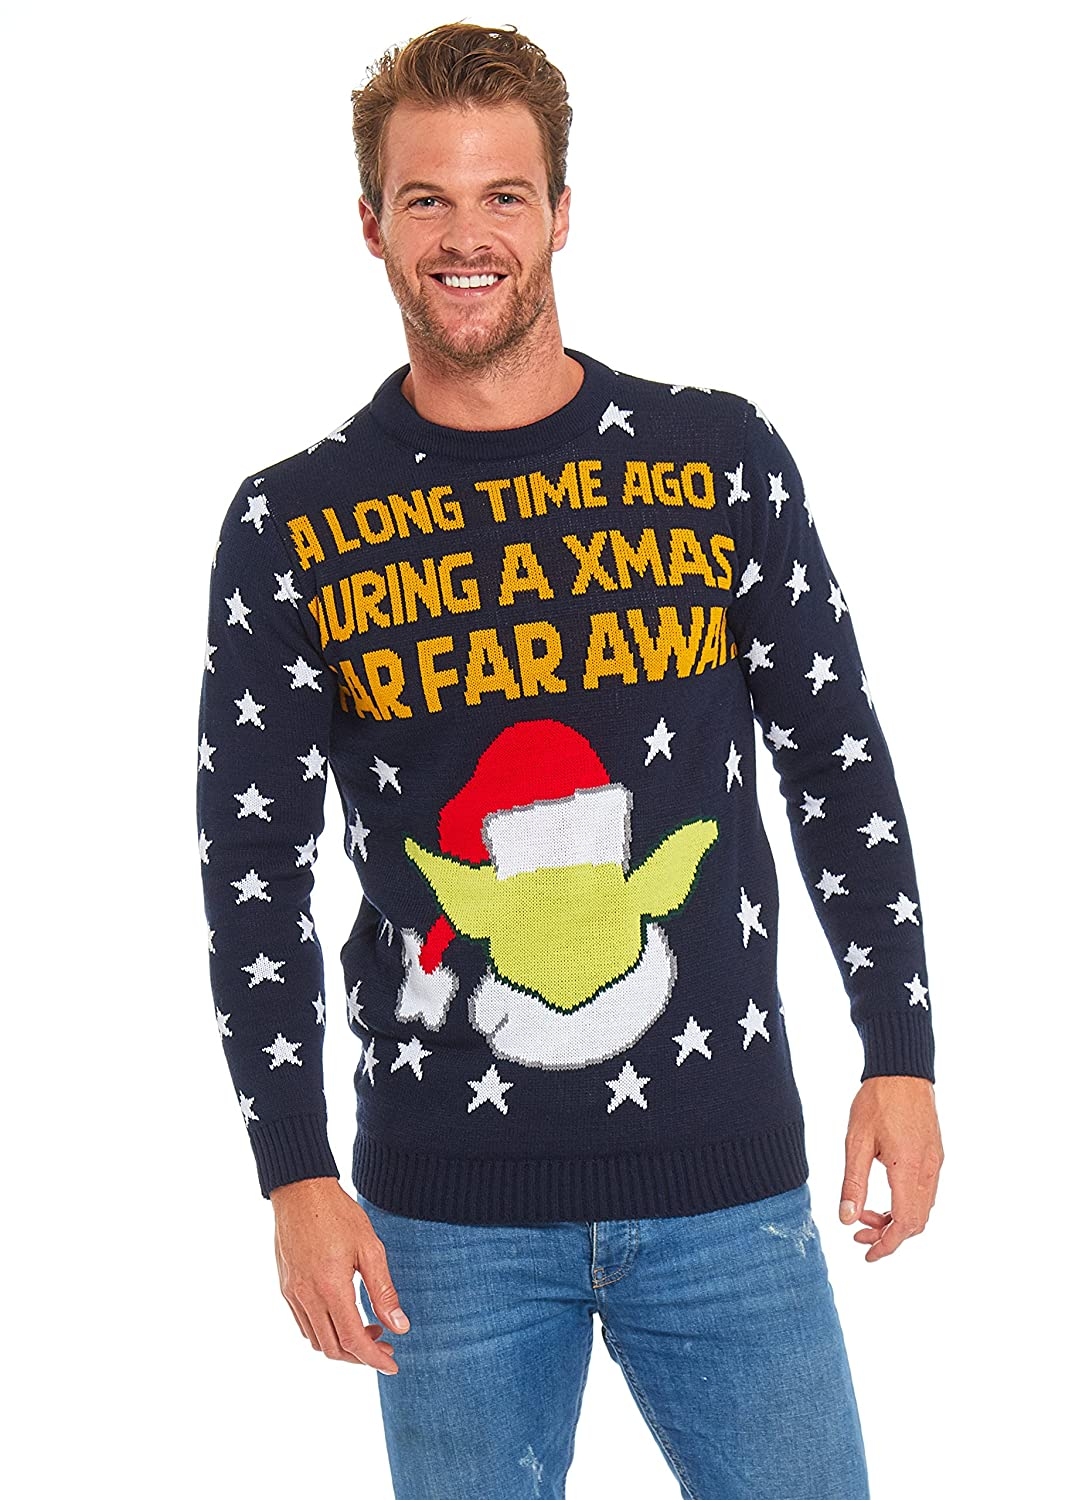 U LOOK UGLY TODAY Mens Christmas Ugly Sweater Unisex Jumper for Xmas Party Holiday